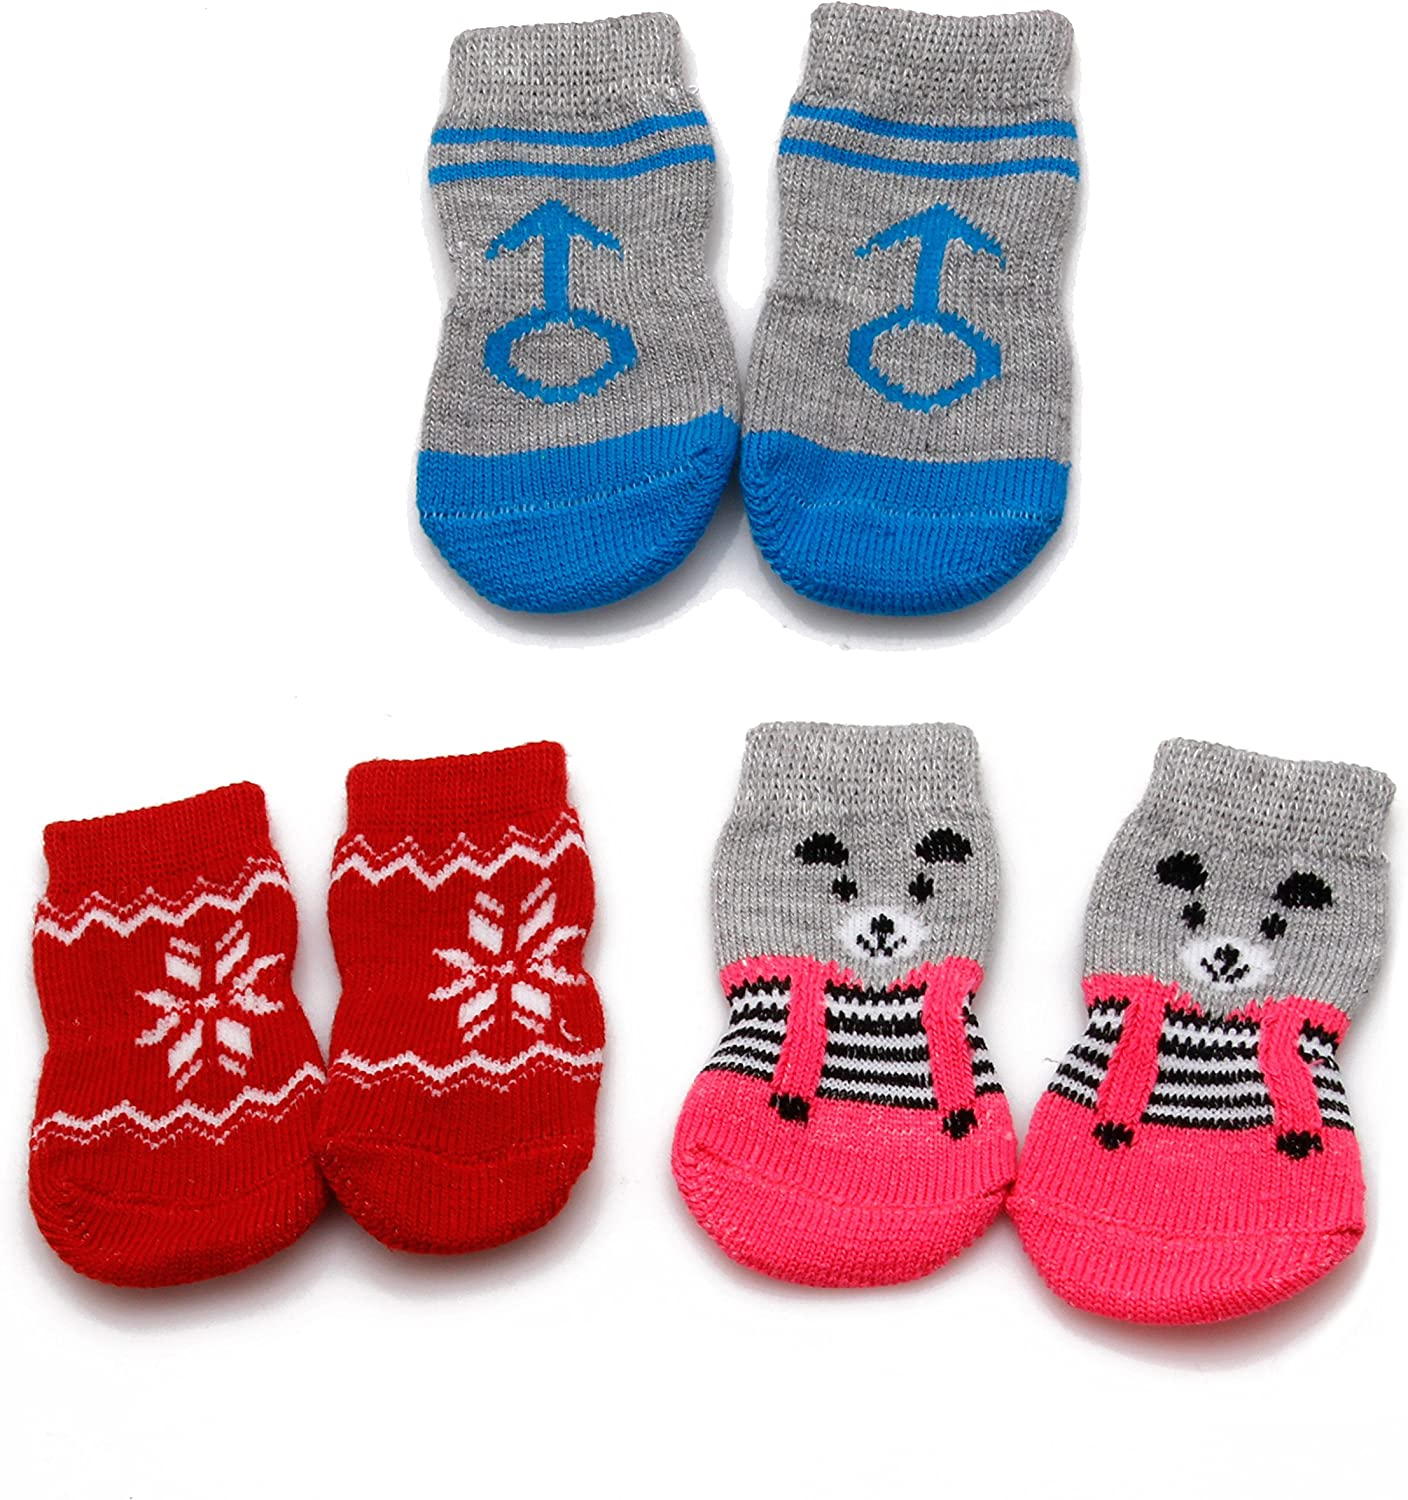 llwei258 4 Pcs Puppy Dog Socks Pet indoor Soft Warm Clothes Cotton Anti-slip Boot Booties S